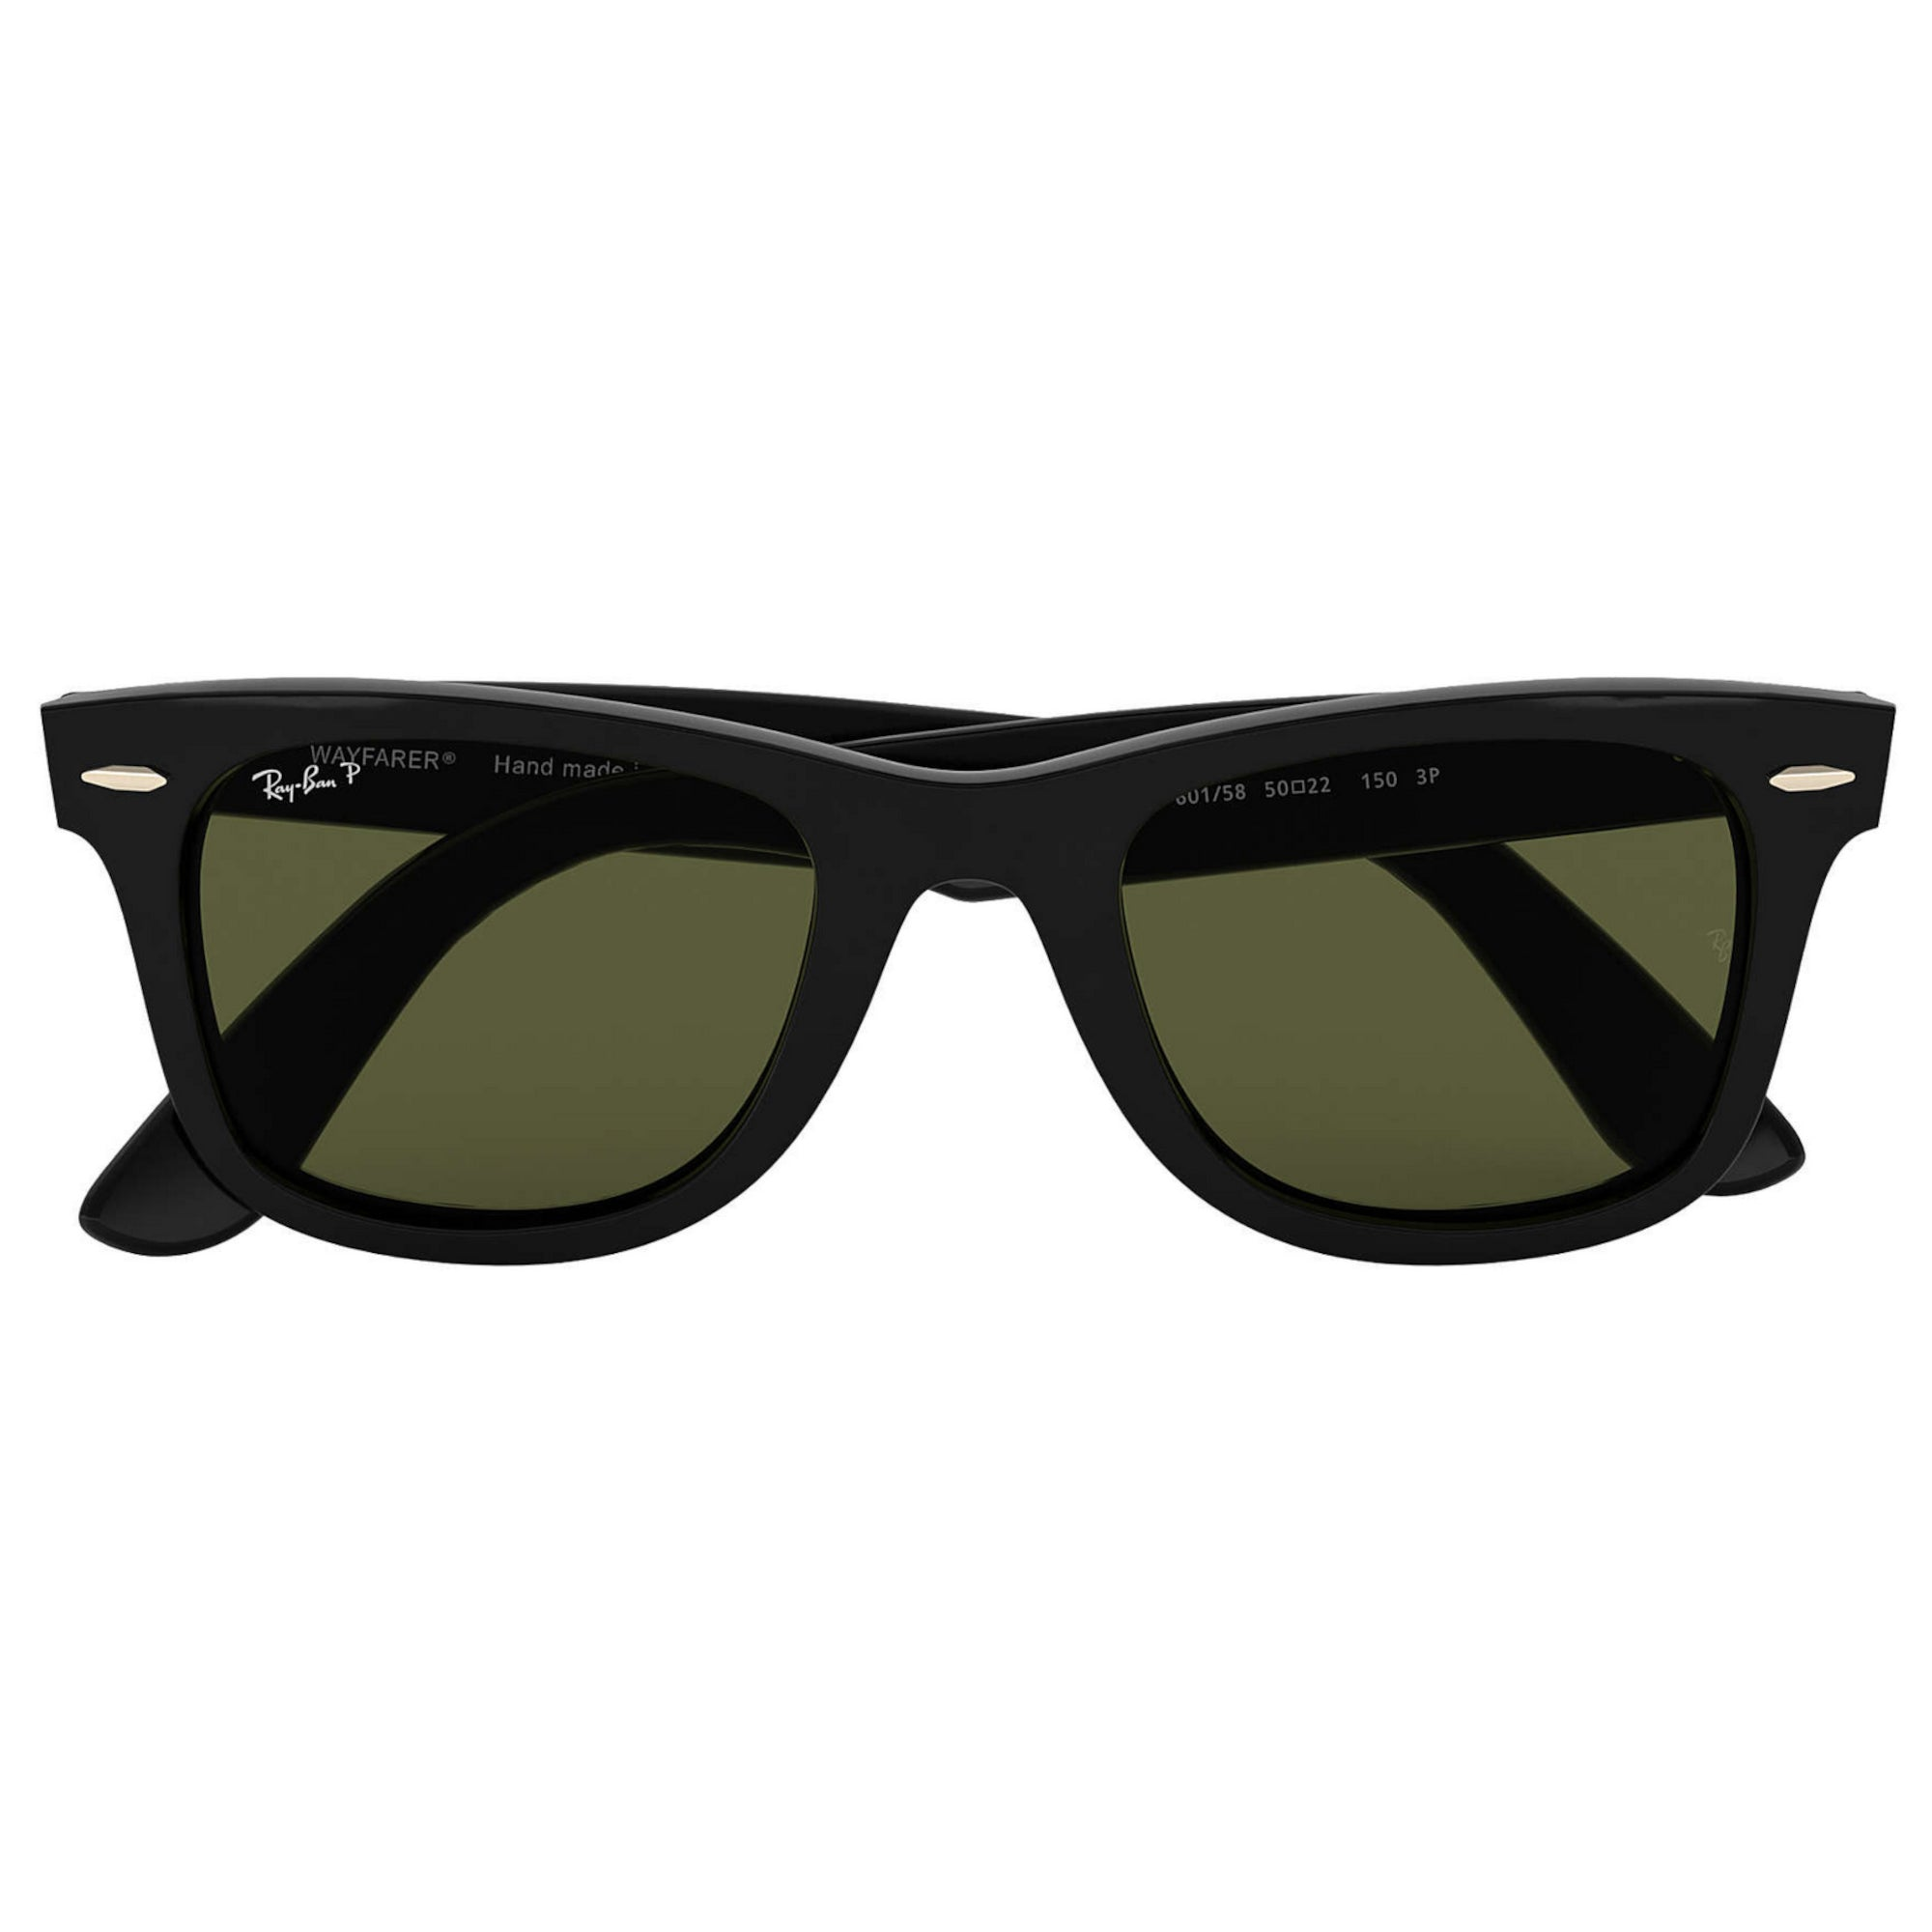 Ray-Ban Wayfarer Ease Men's Sunglasses - Black Frame/Green Lens